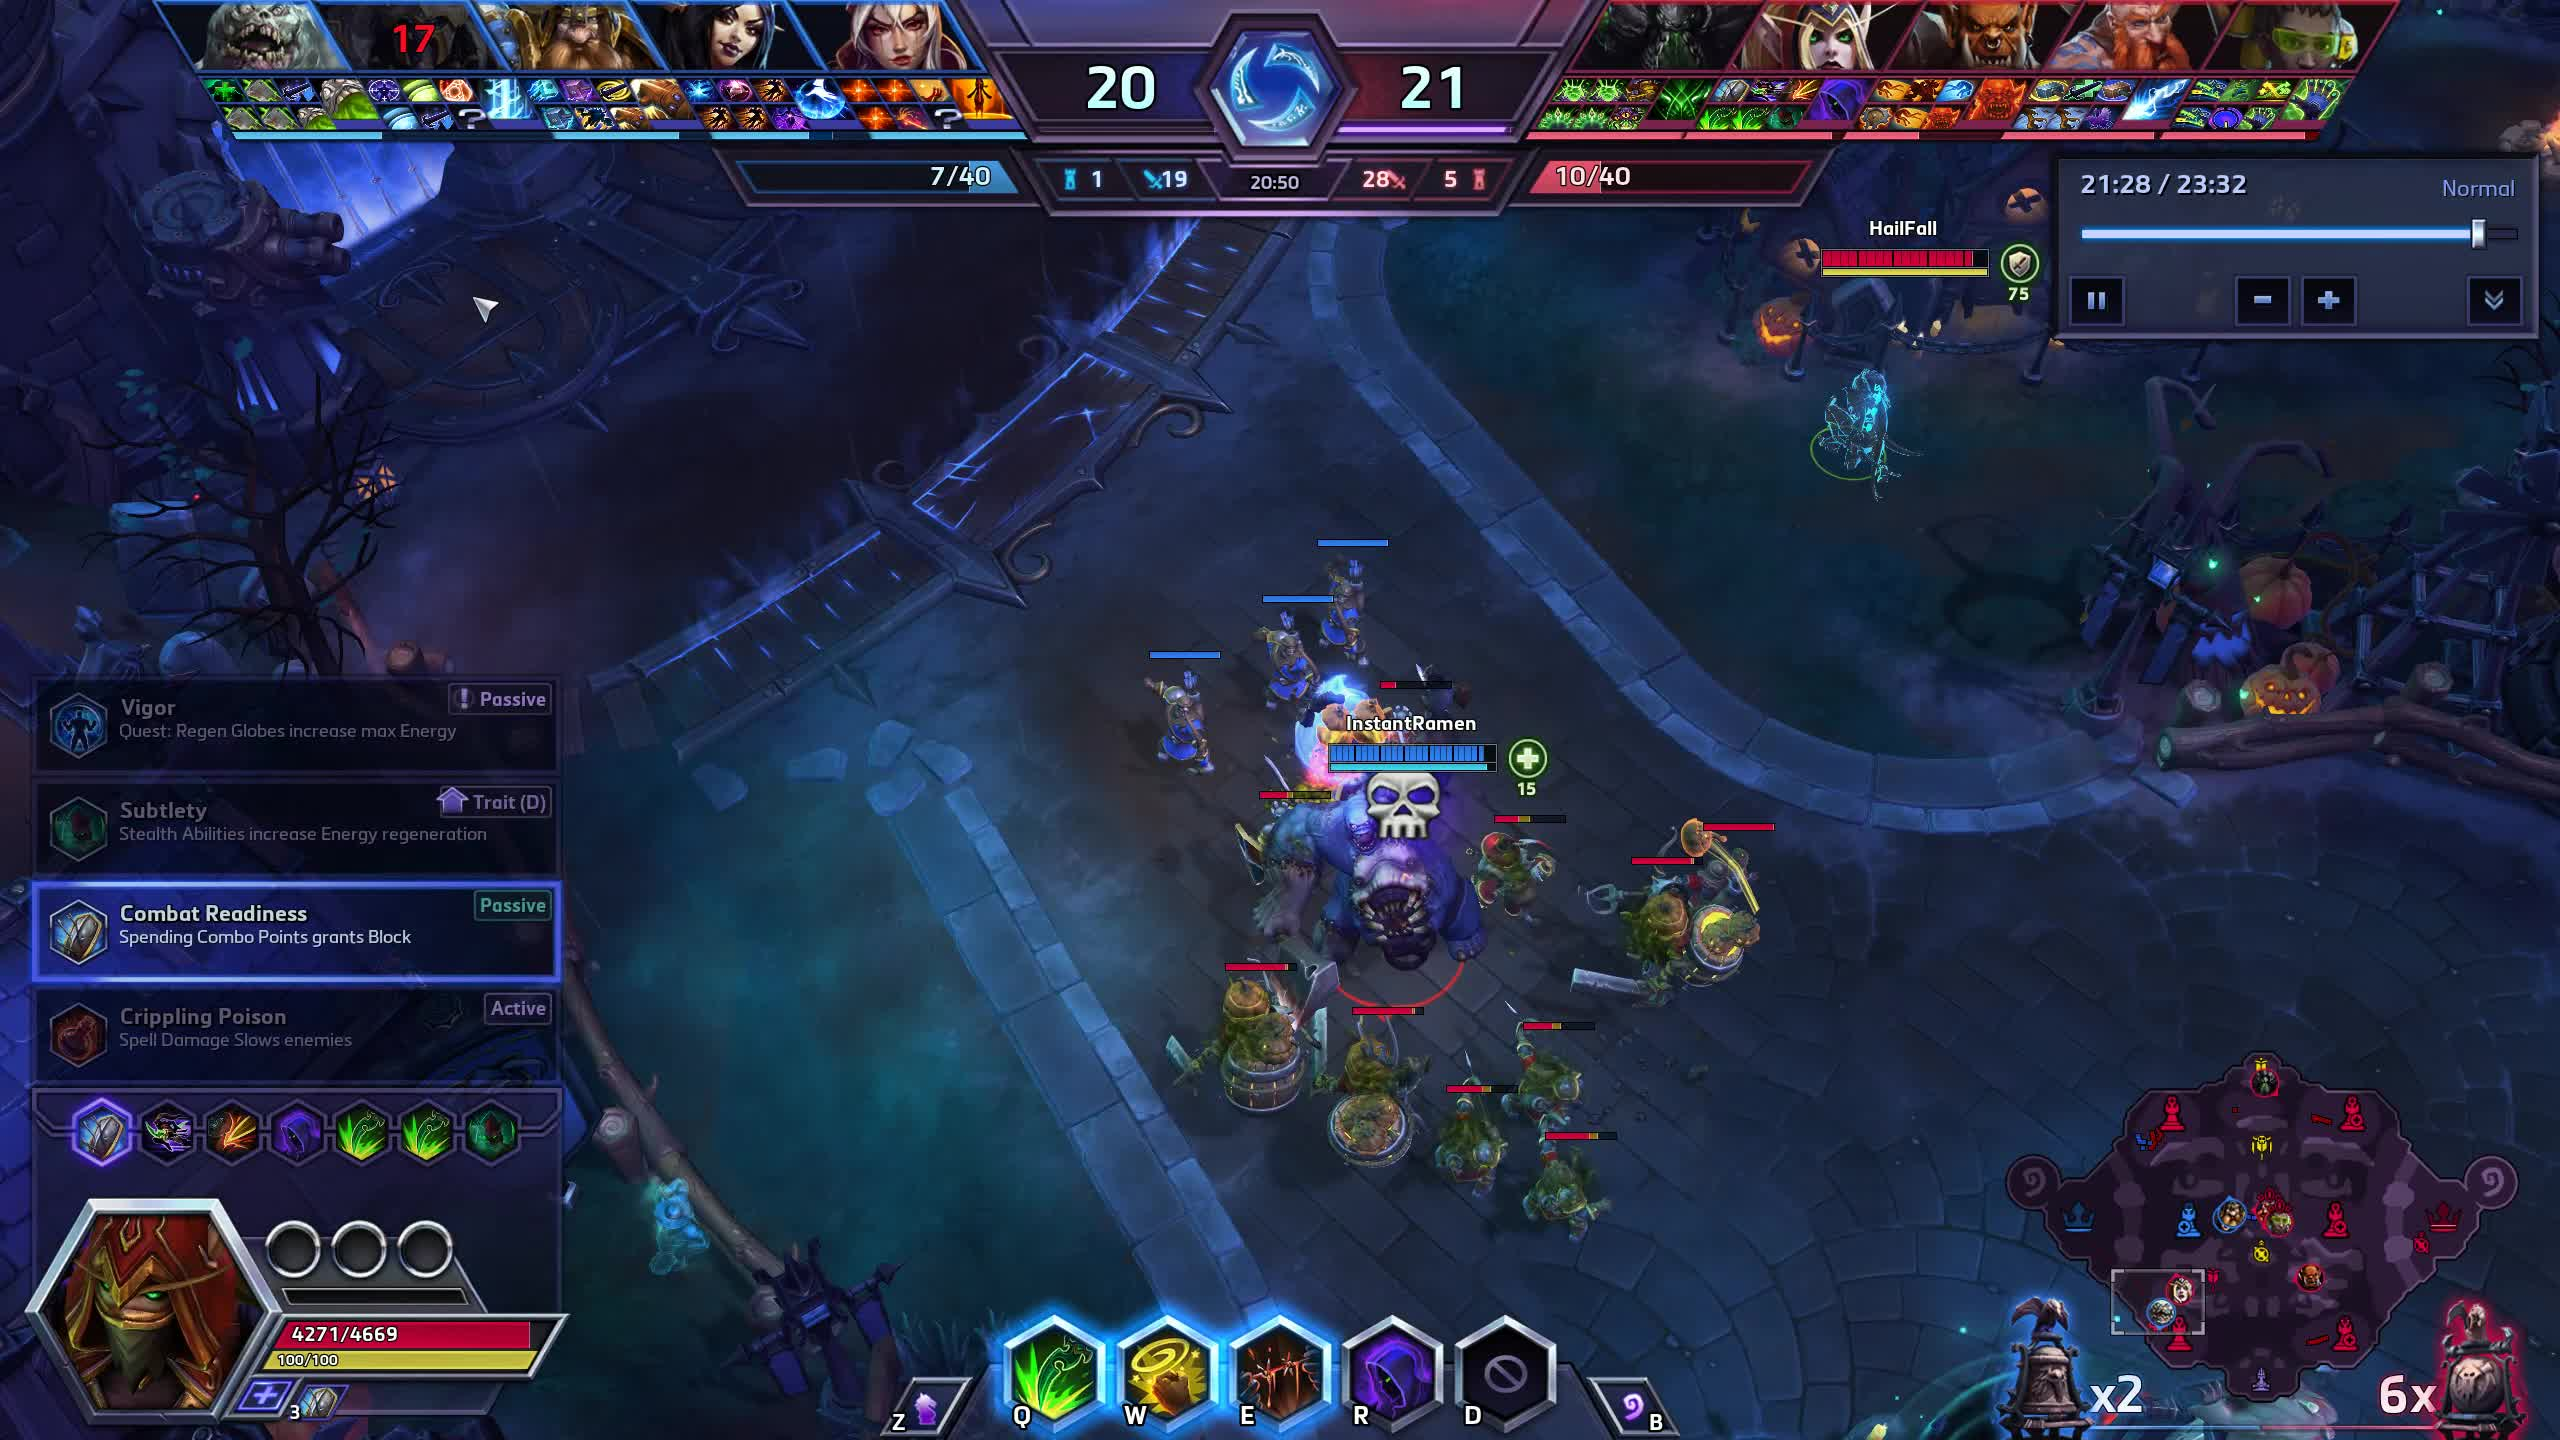 heroesofthestorm, Heroes of the Storm 2019.04.21 - 13.36.28.19 GIFs